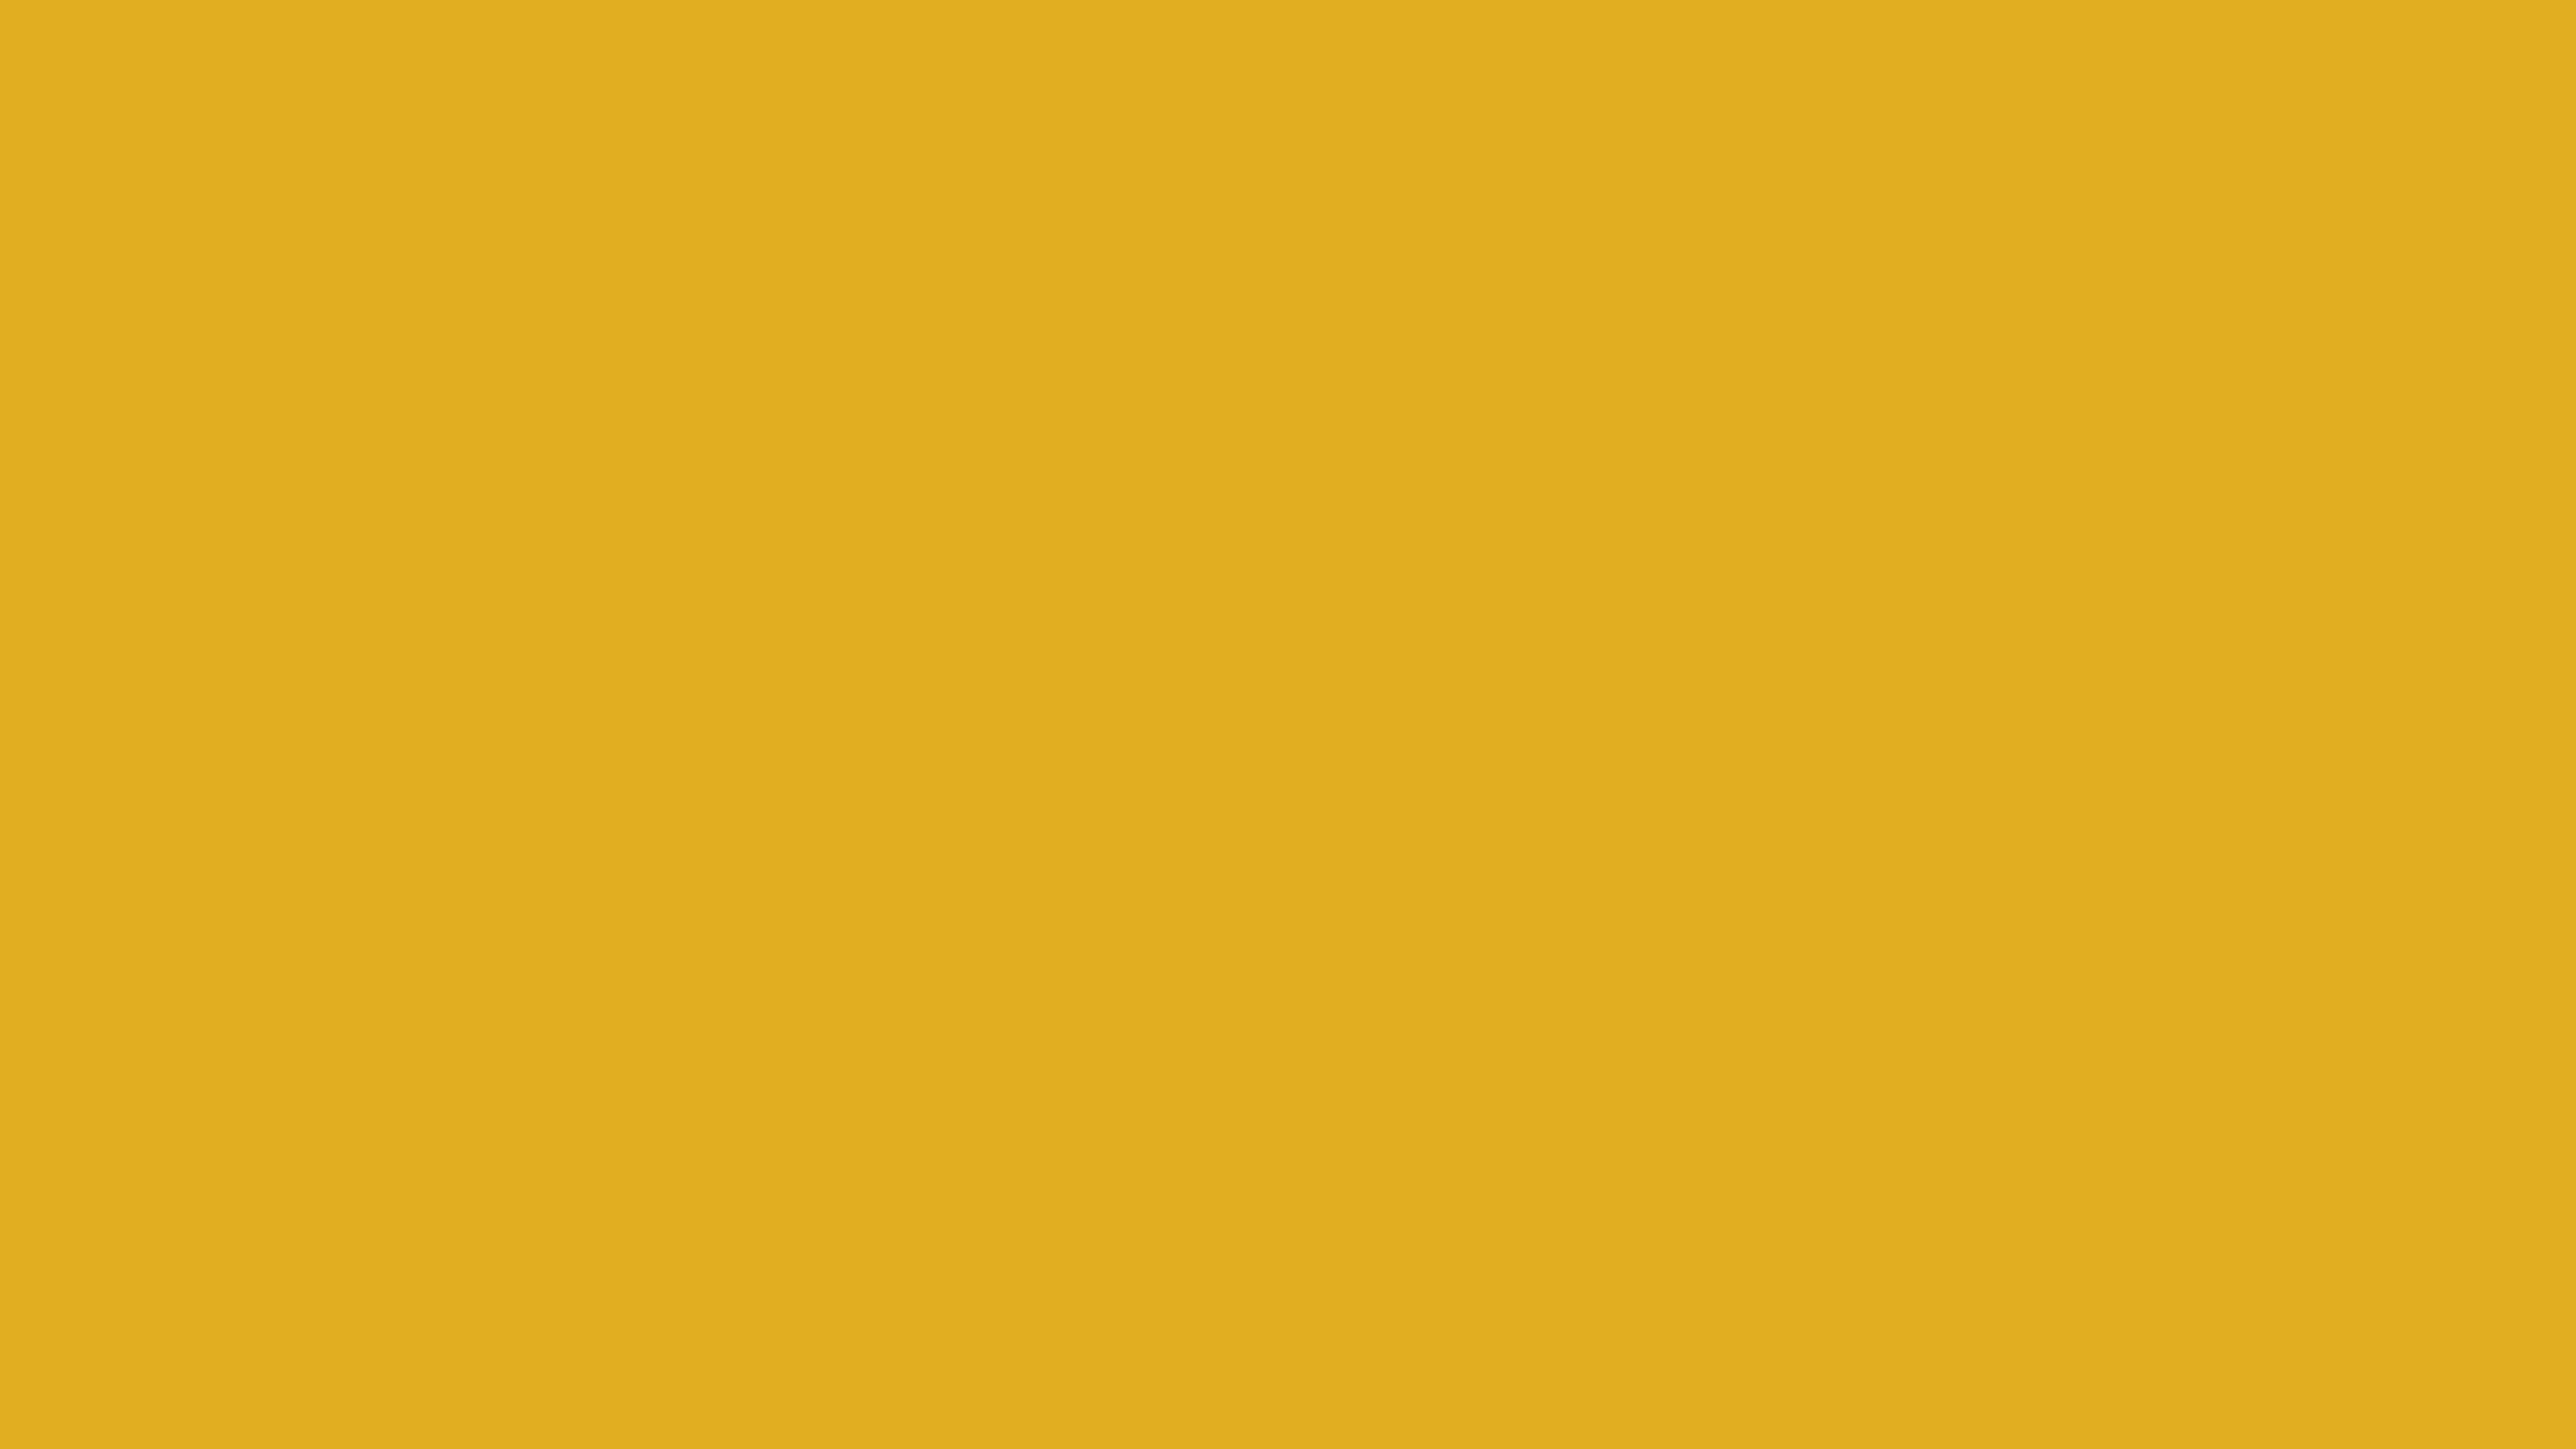 3840x2160 Urobilin Solid Color Background